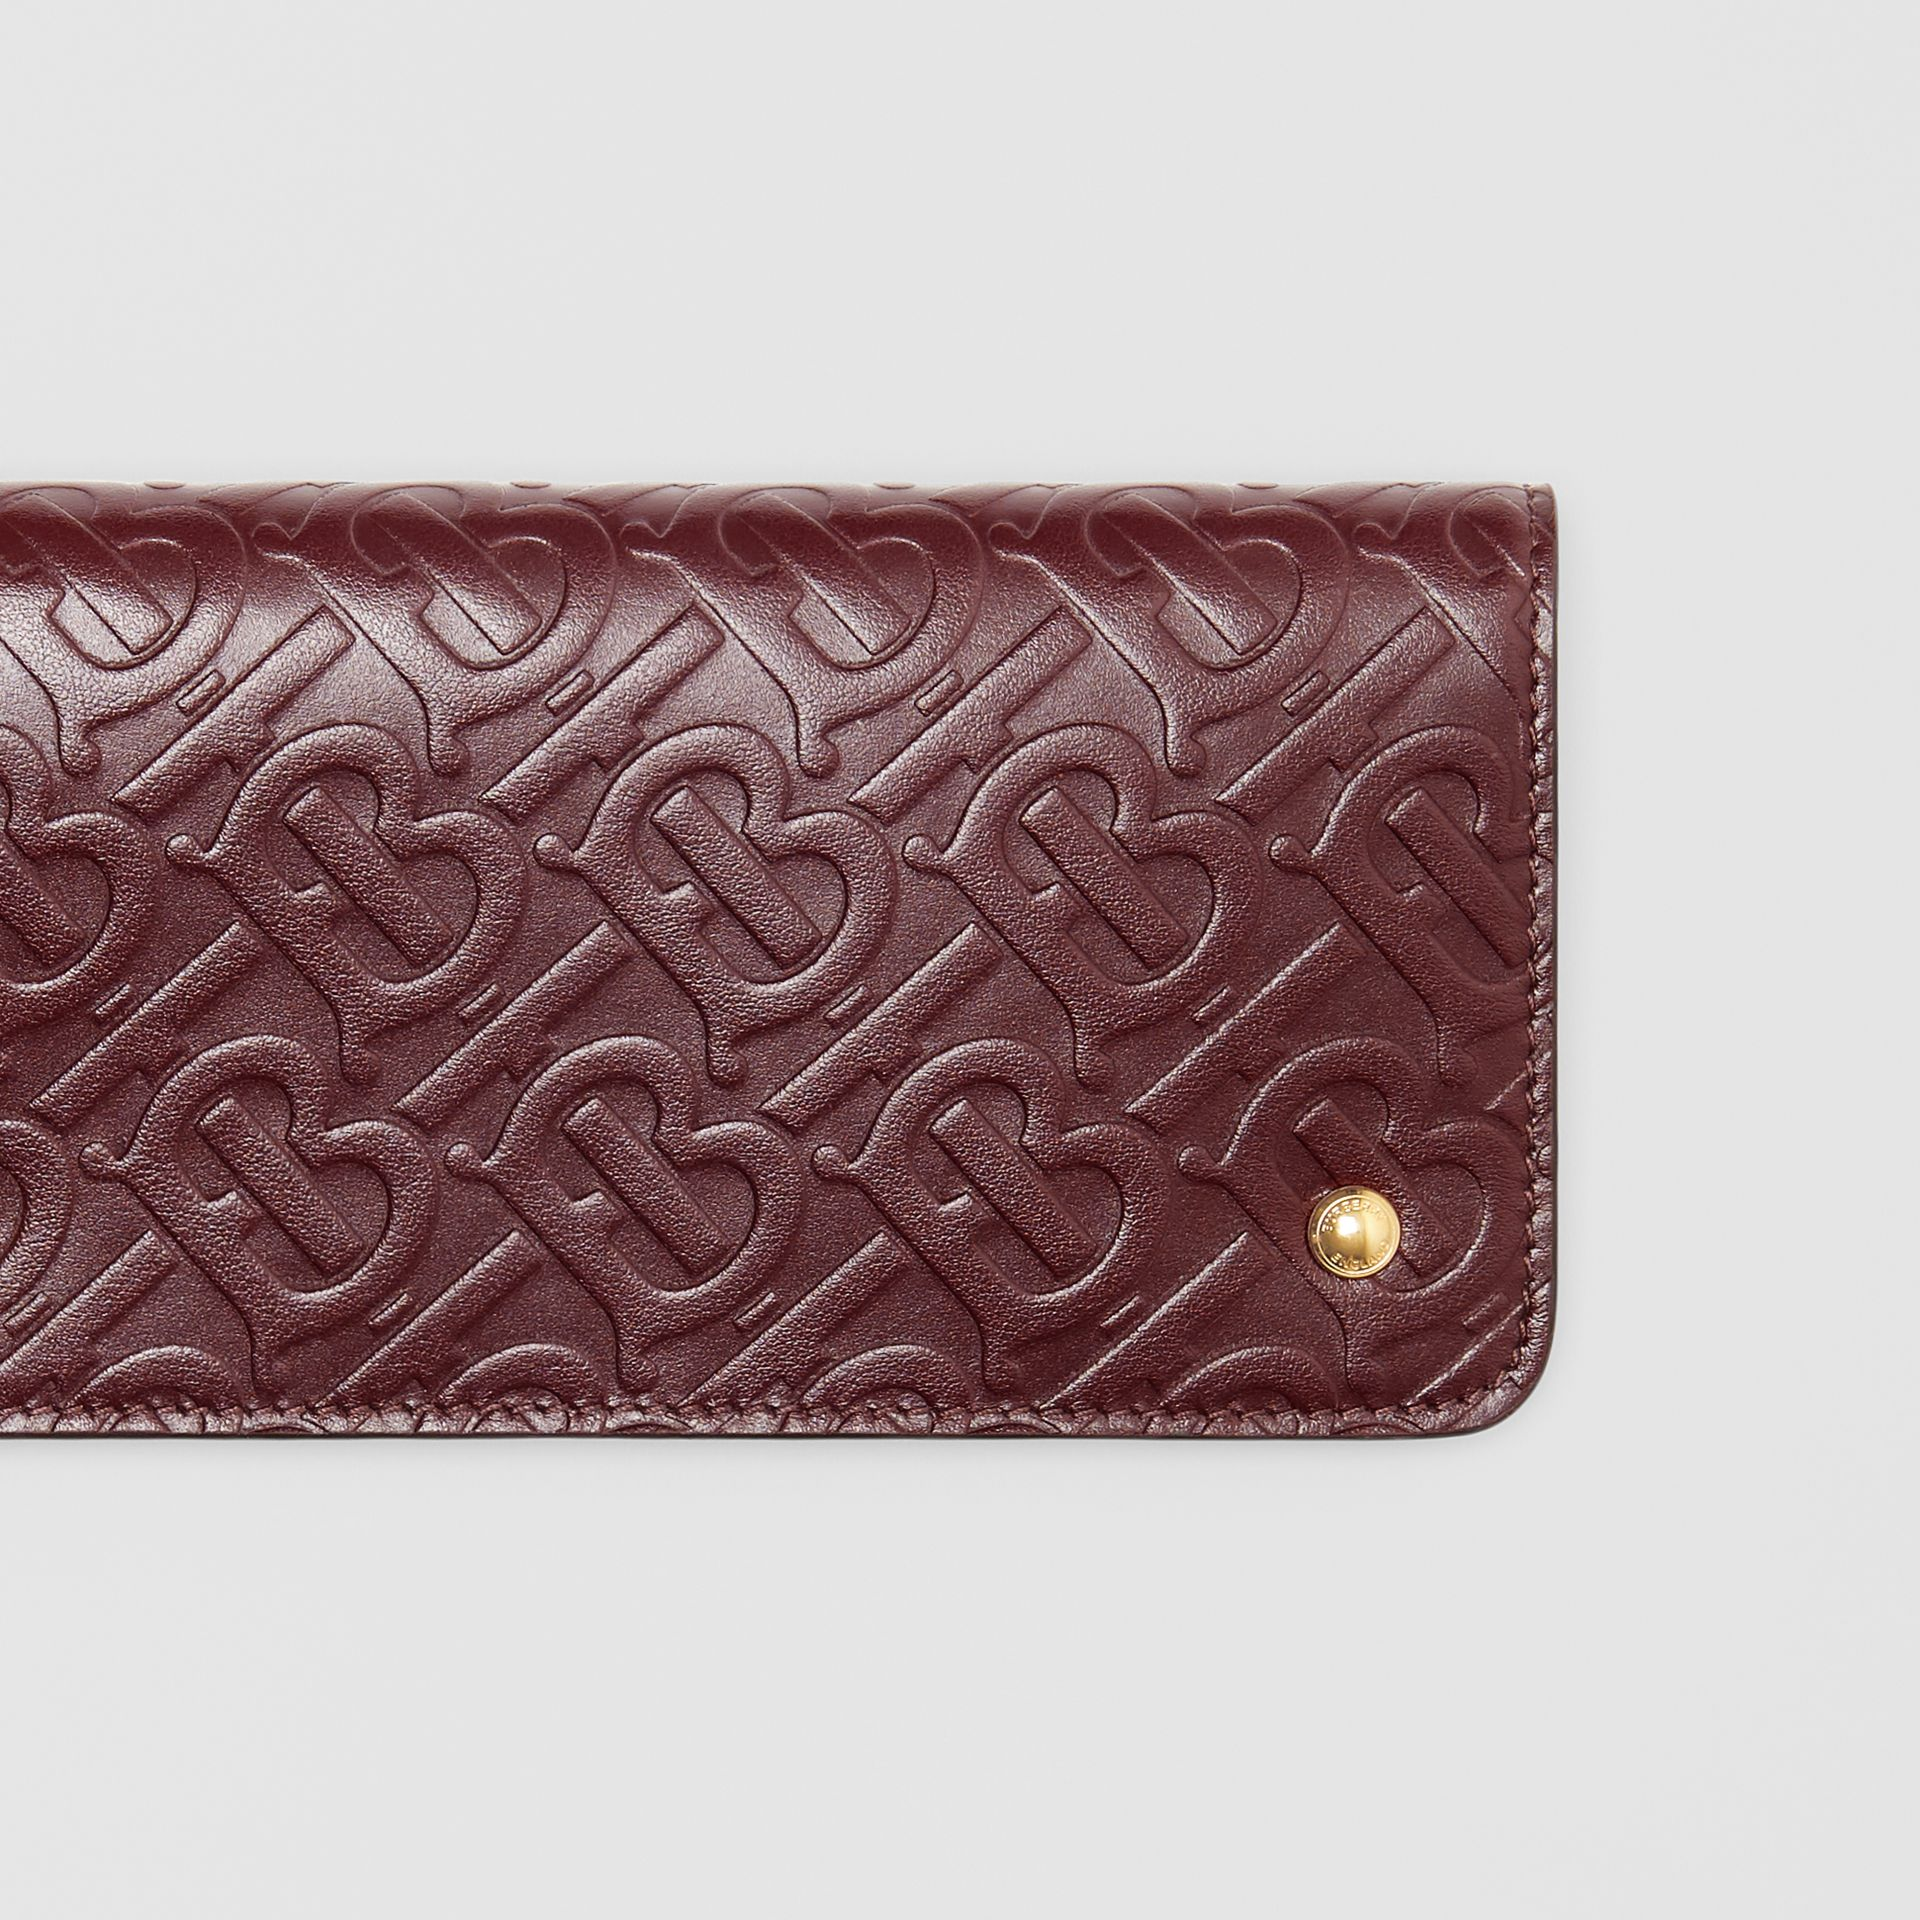 Monogram Leather Phone Wallet in Oxblood - Women | Burberry Singapore - gallery image 1